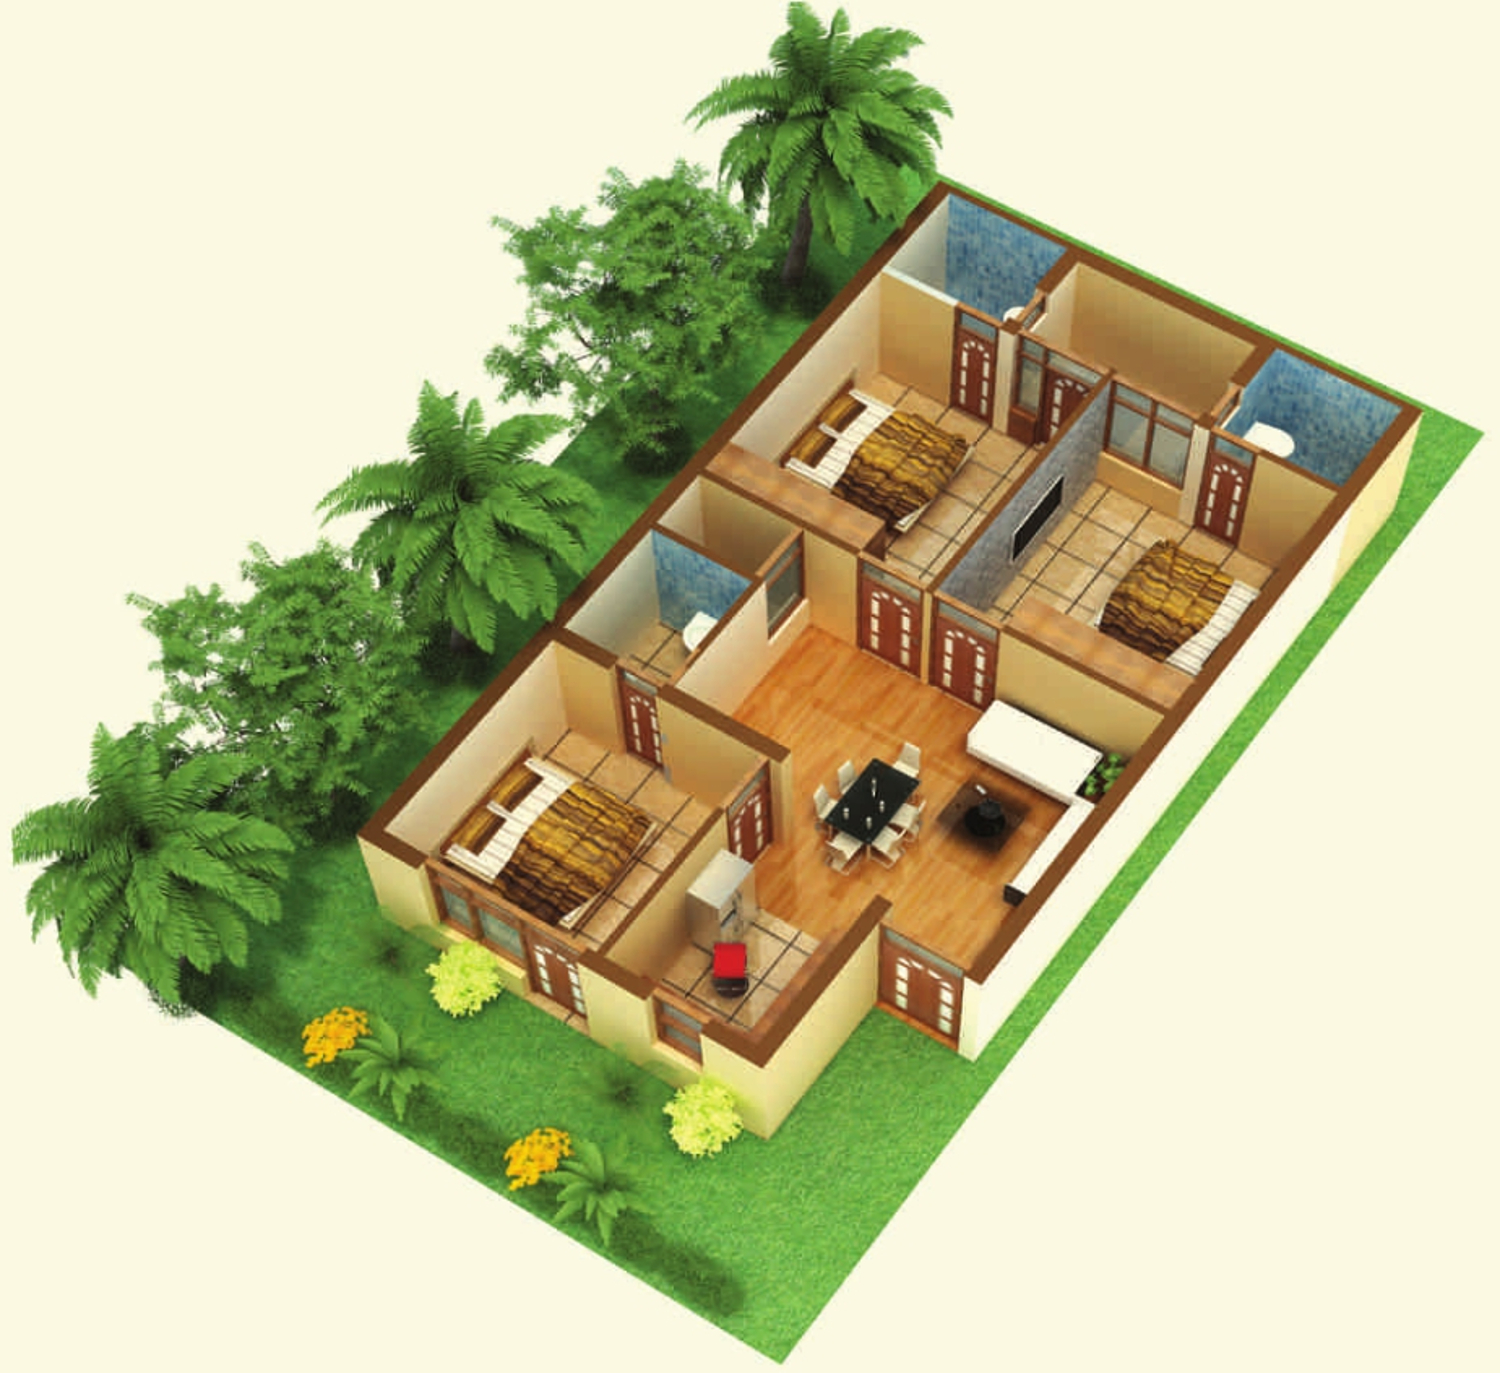 Primary Arcadia Green Home Ii In Sector 125 Mohali Mohali Price Location Map Floor Plan